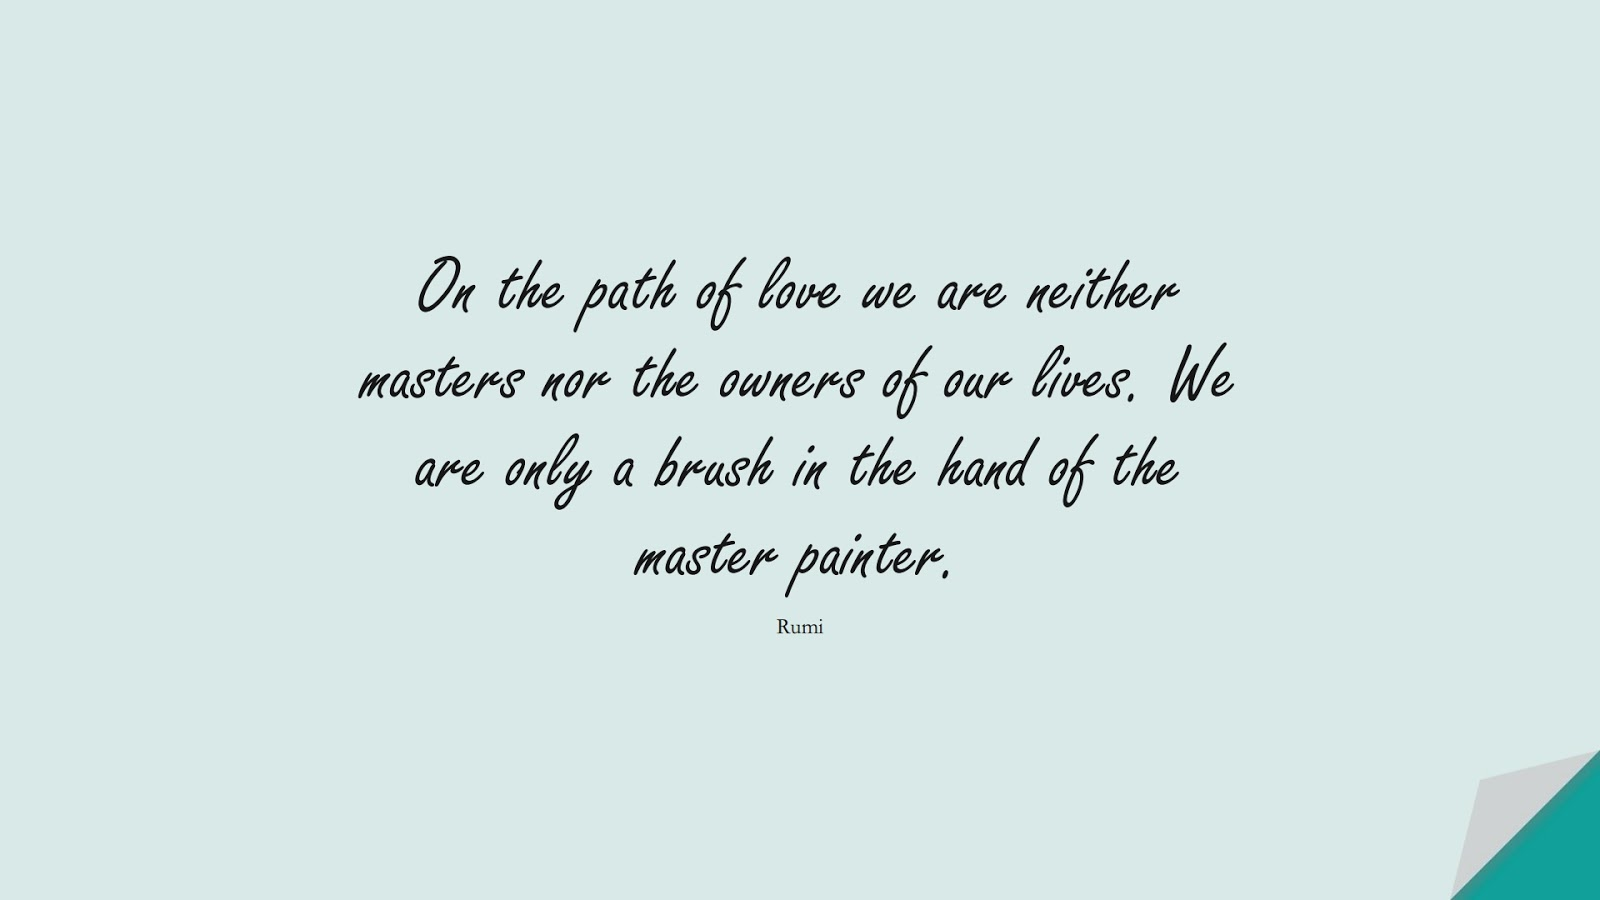 On the path of love we are neither masters nor the owners of our lives. We are only a brush in the hand of the master painter. (Rumi);  #RumiQuotes